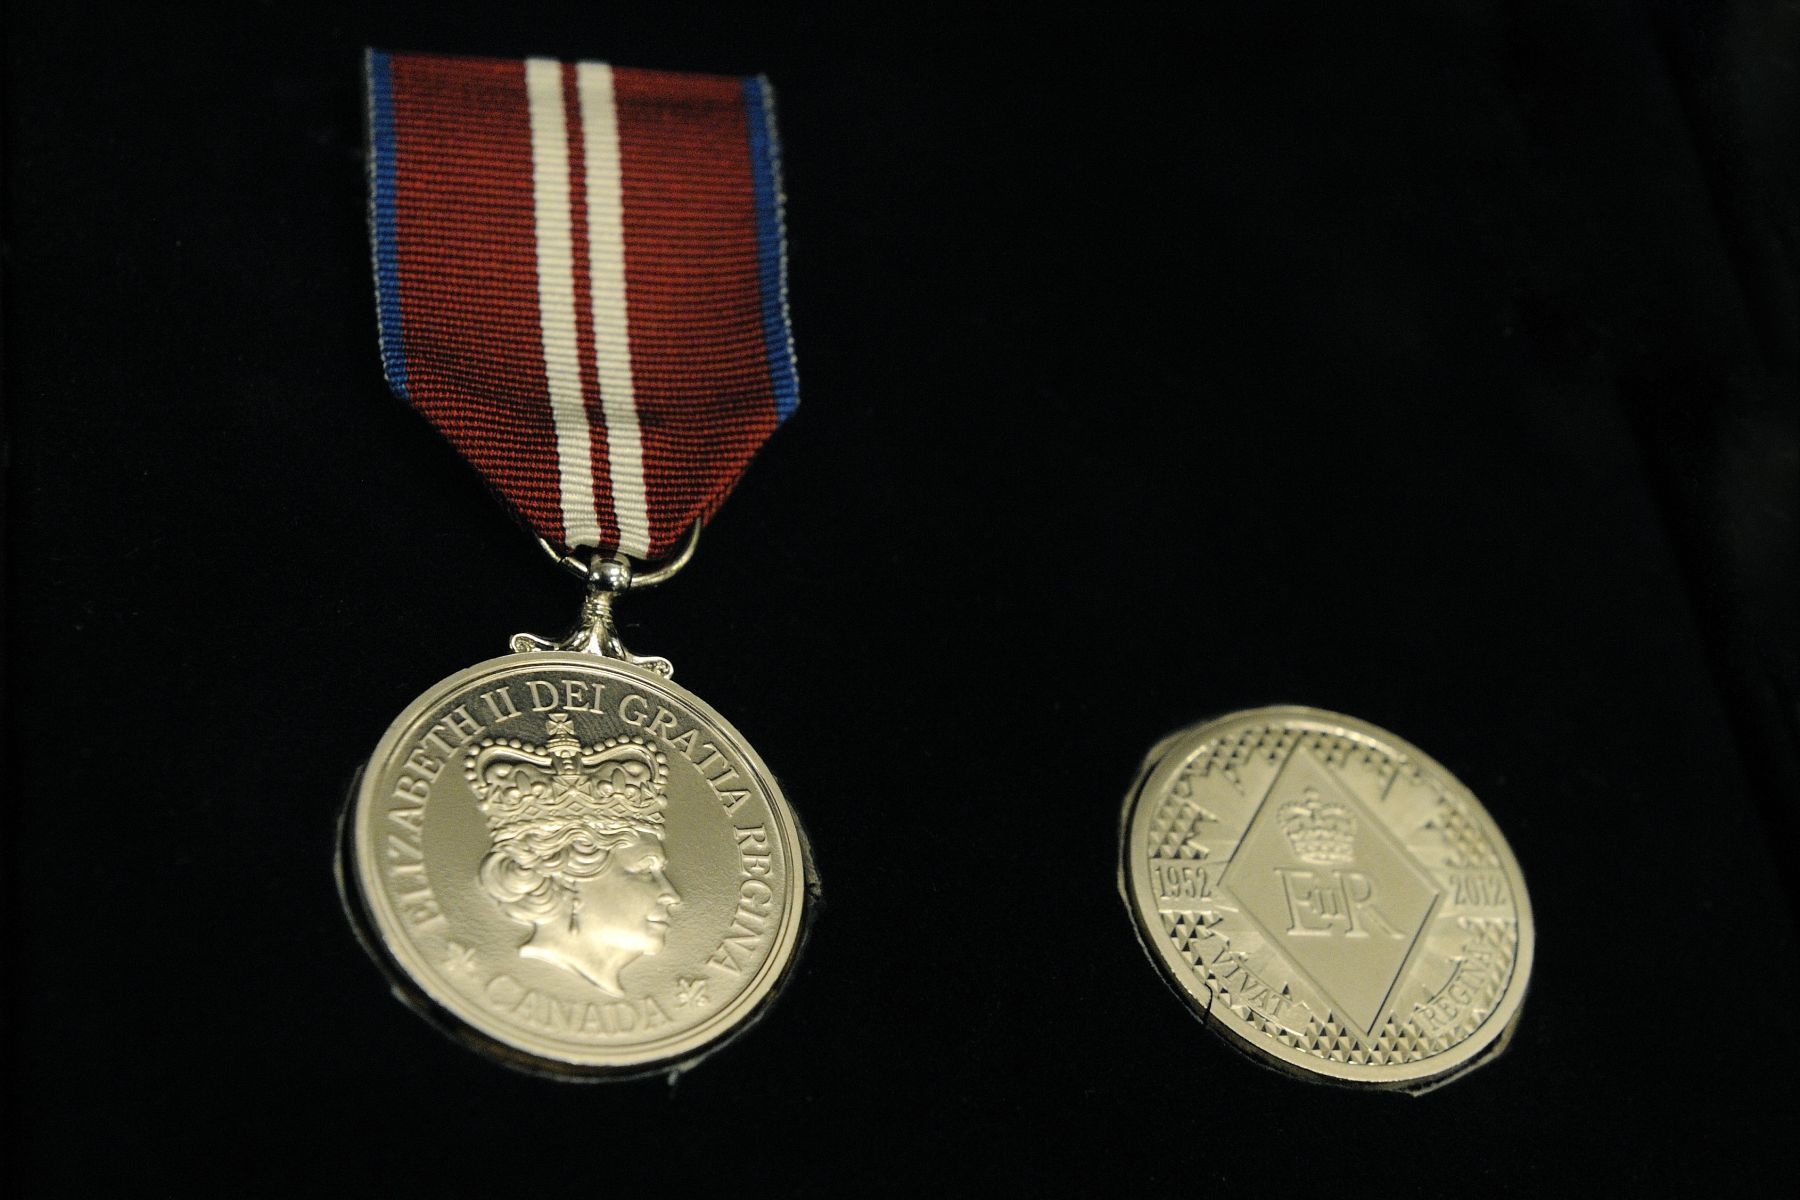 First announced on February 3, 2011, this commemorative medal is a tangible way for Canada to honour Her Majesty for her service to this country, and to celebrate significant contributions and achievements by Canadians.